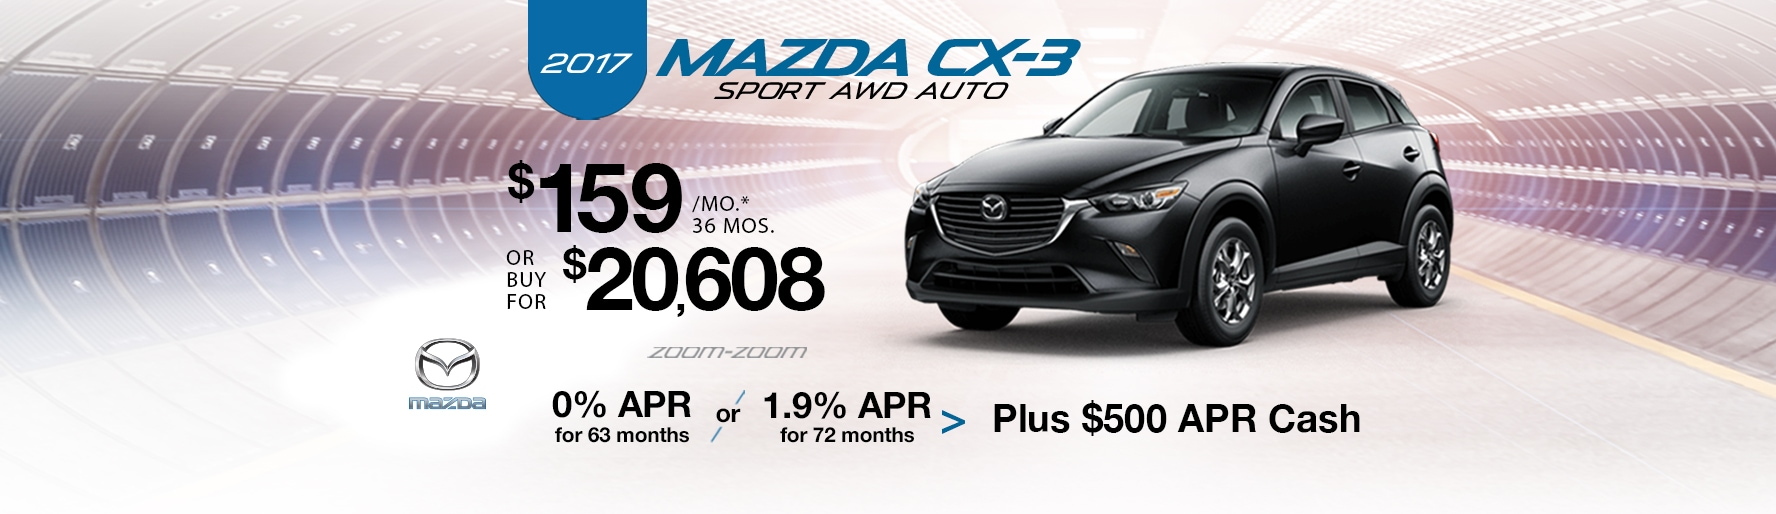 2017 Mazda CX-3 Sport AWD Auto Lease Special at Liberty Mazda